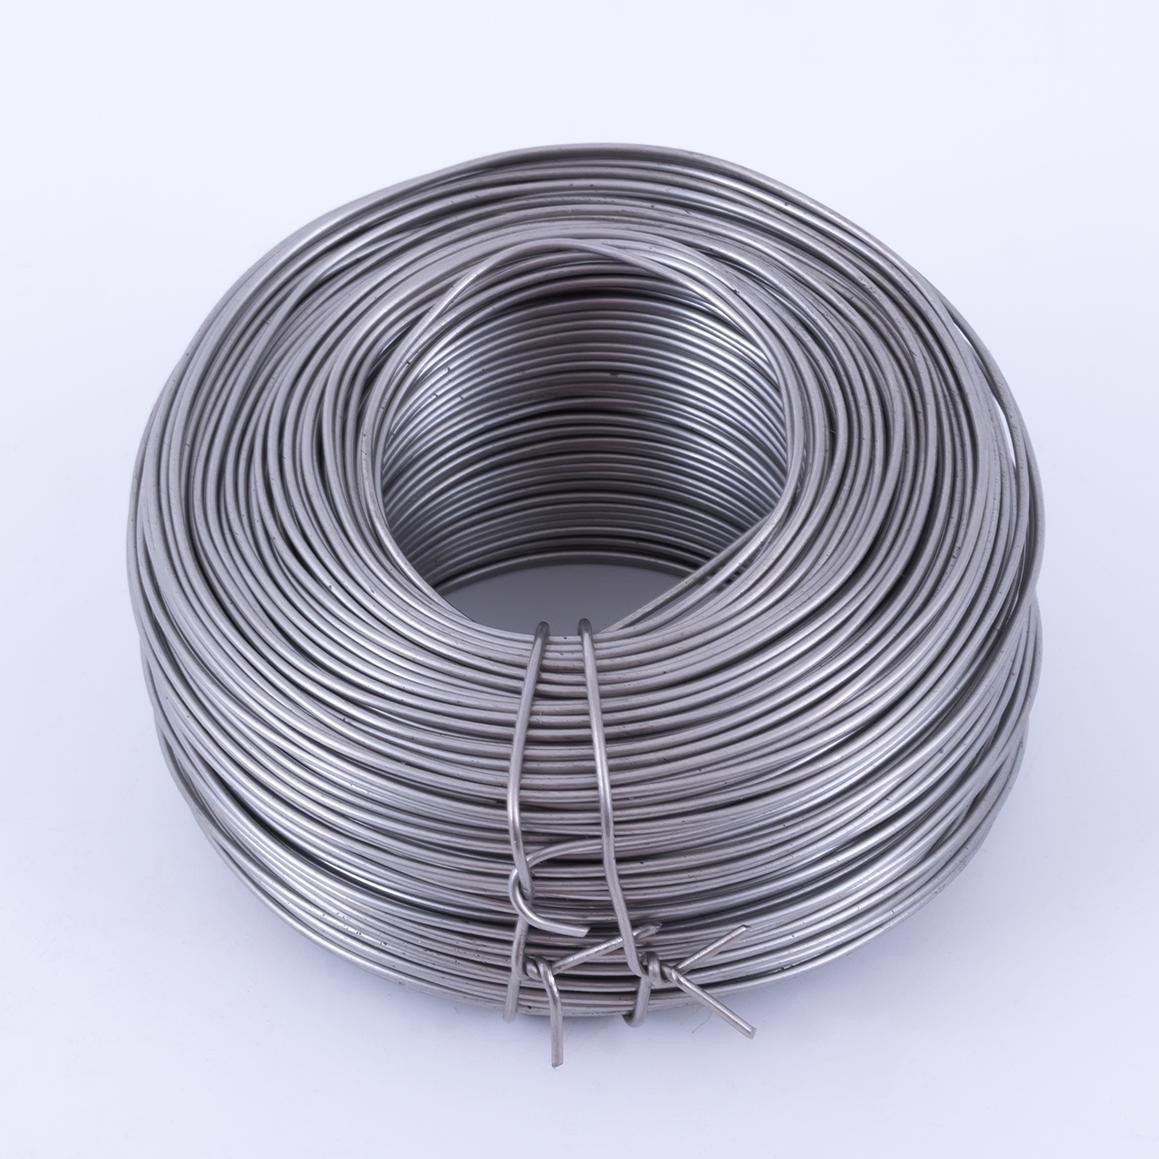 Stainless Steel Tying Wire Groundwork And Slab Electrical Wiring Accessories Products